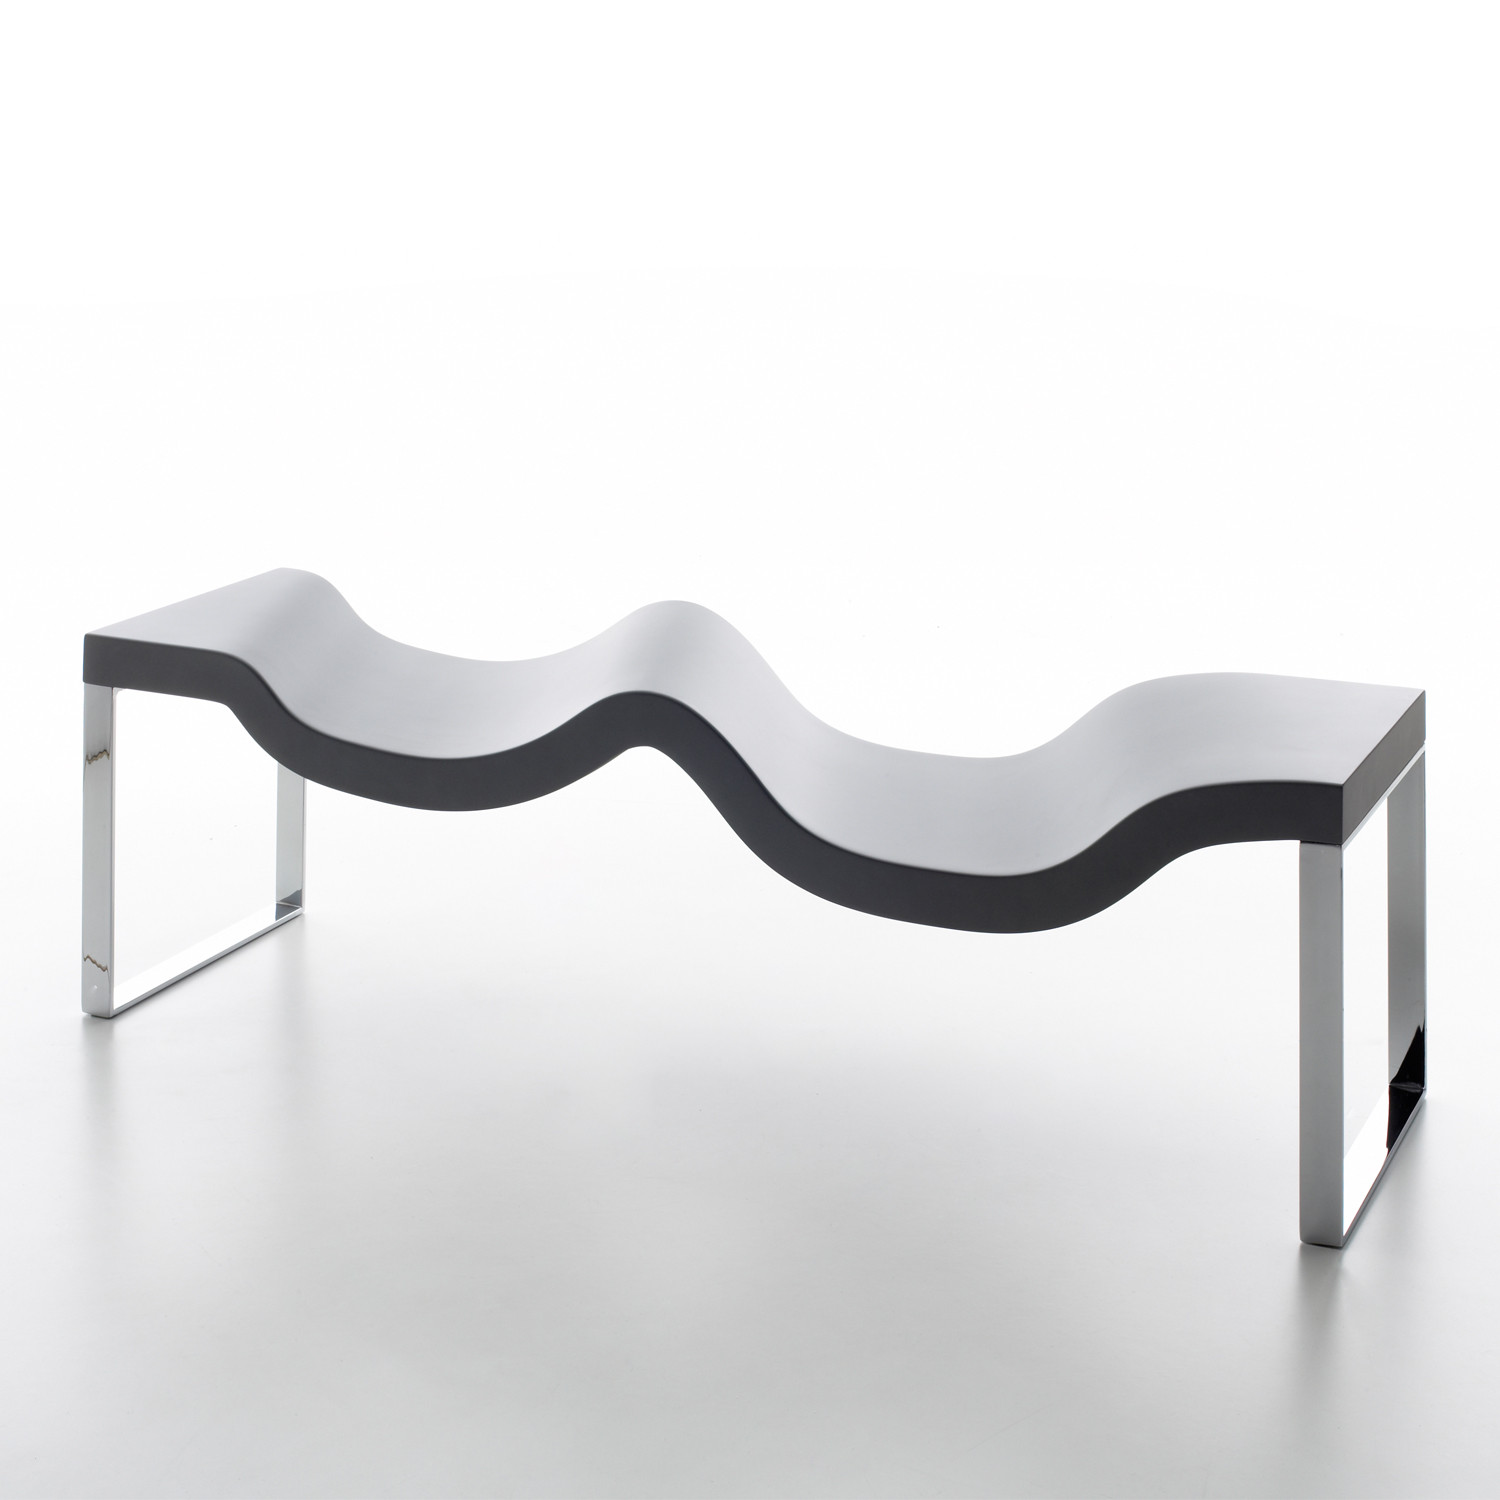 Stripe Bench by Max Design